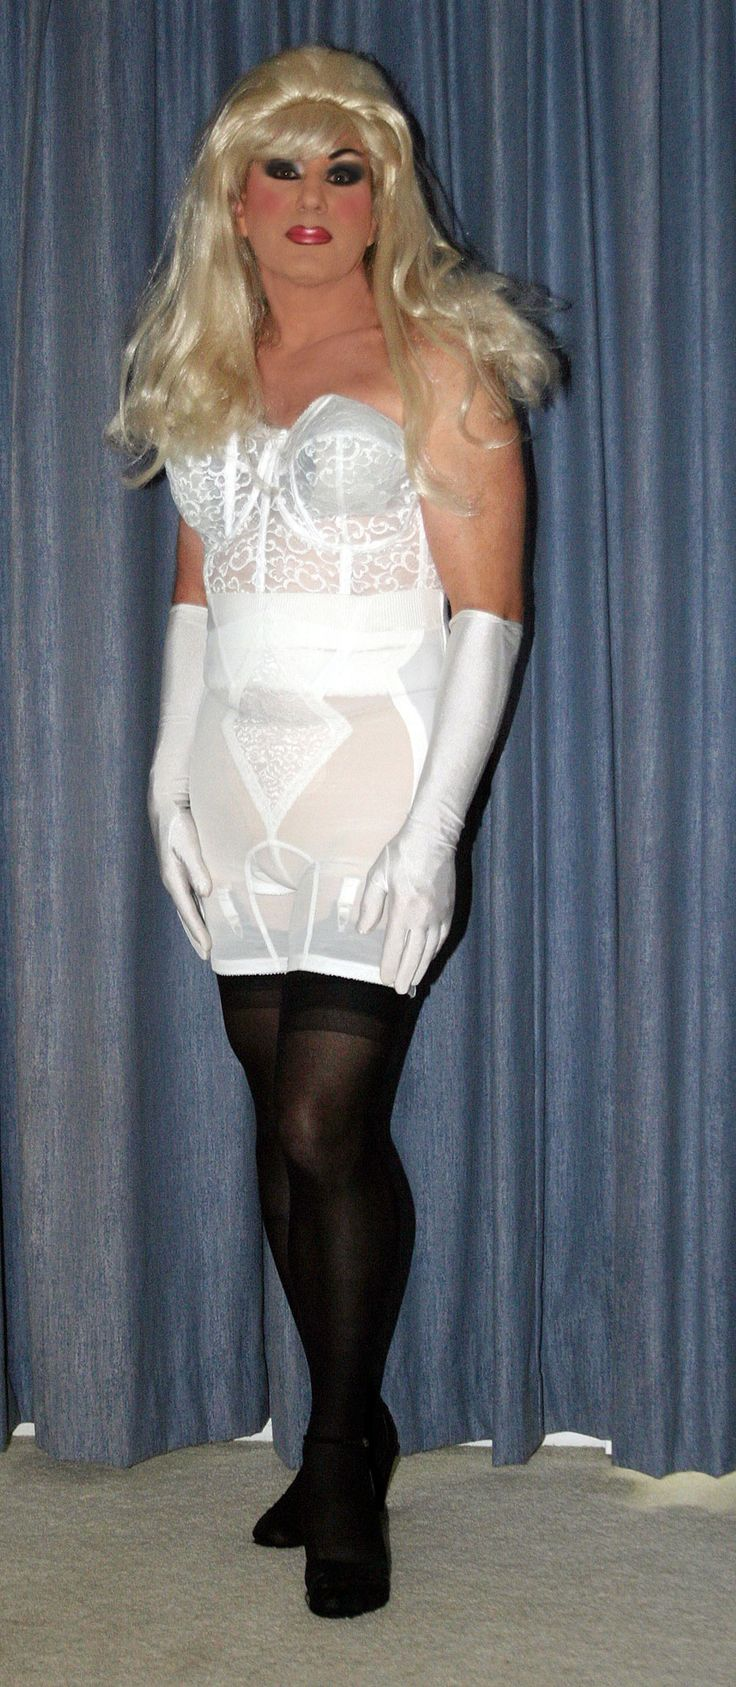 Foundations Christine In Foundations Girdles And